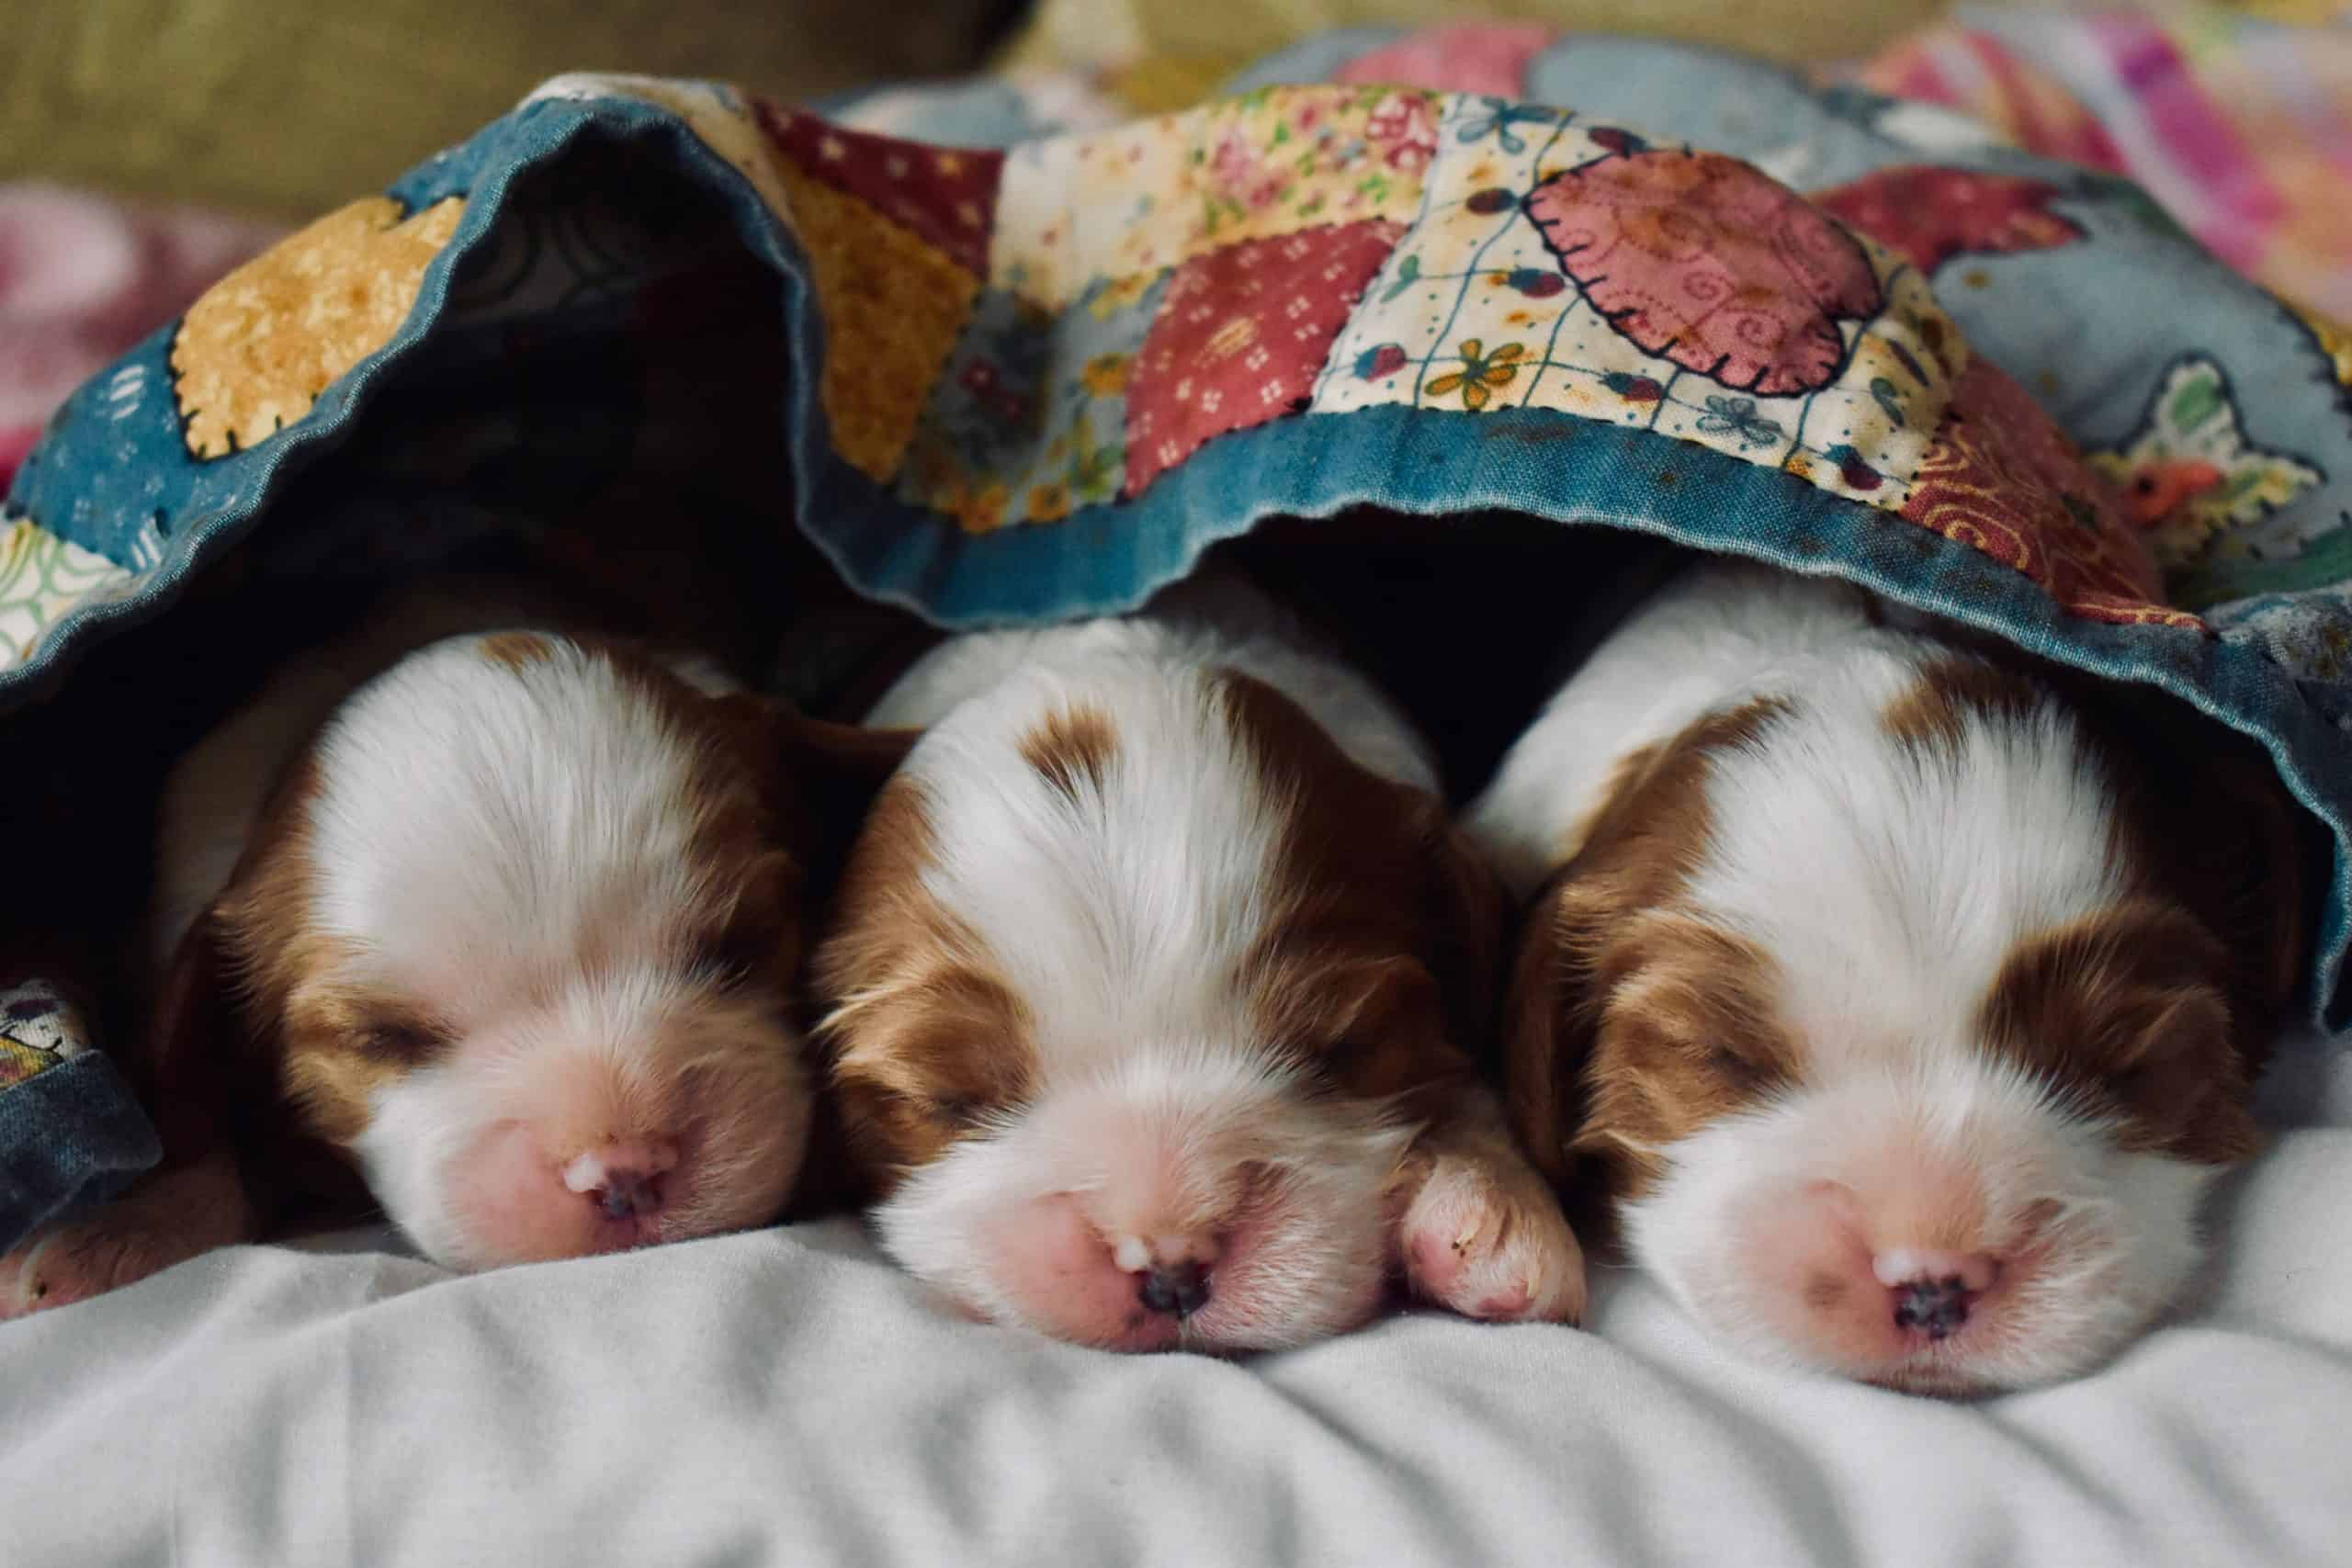 Three young puppies cuddling under a blanket.